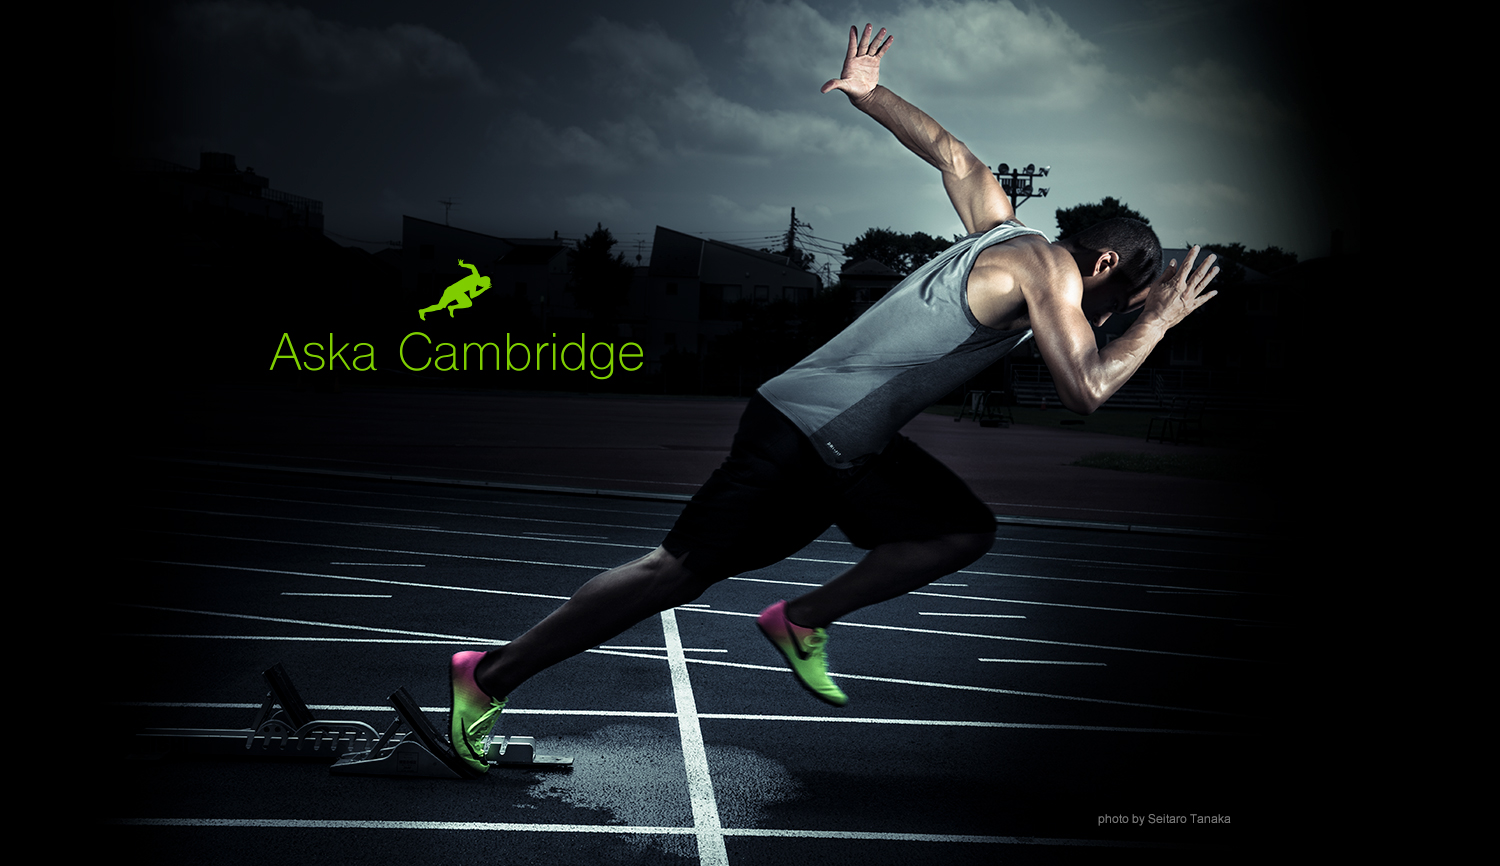 Aska Cambridge